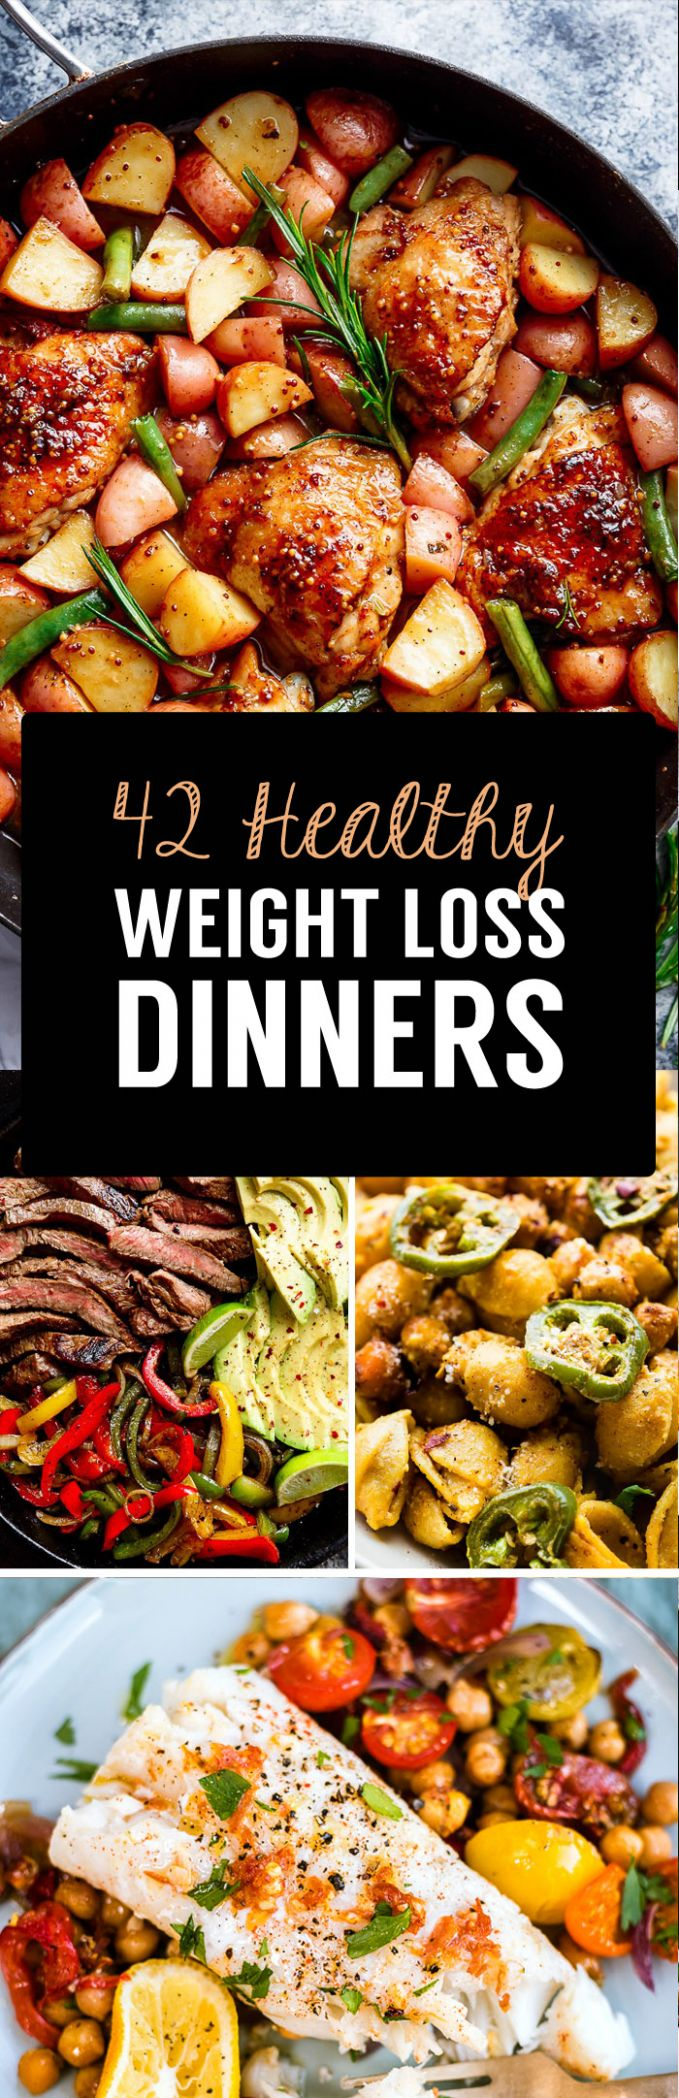 9 Weight Loss Dinner Recipes That Will Help You Shrink Belly Fat ..